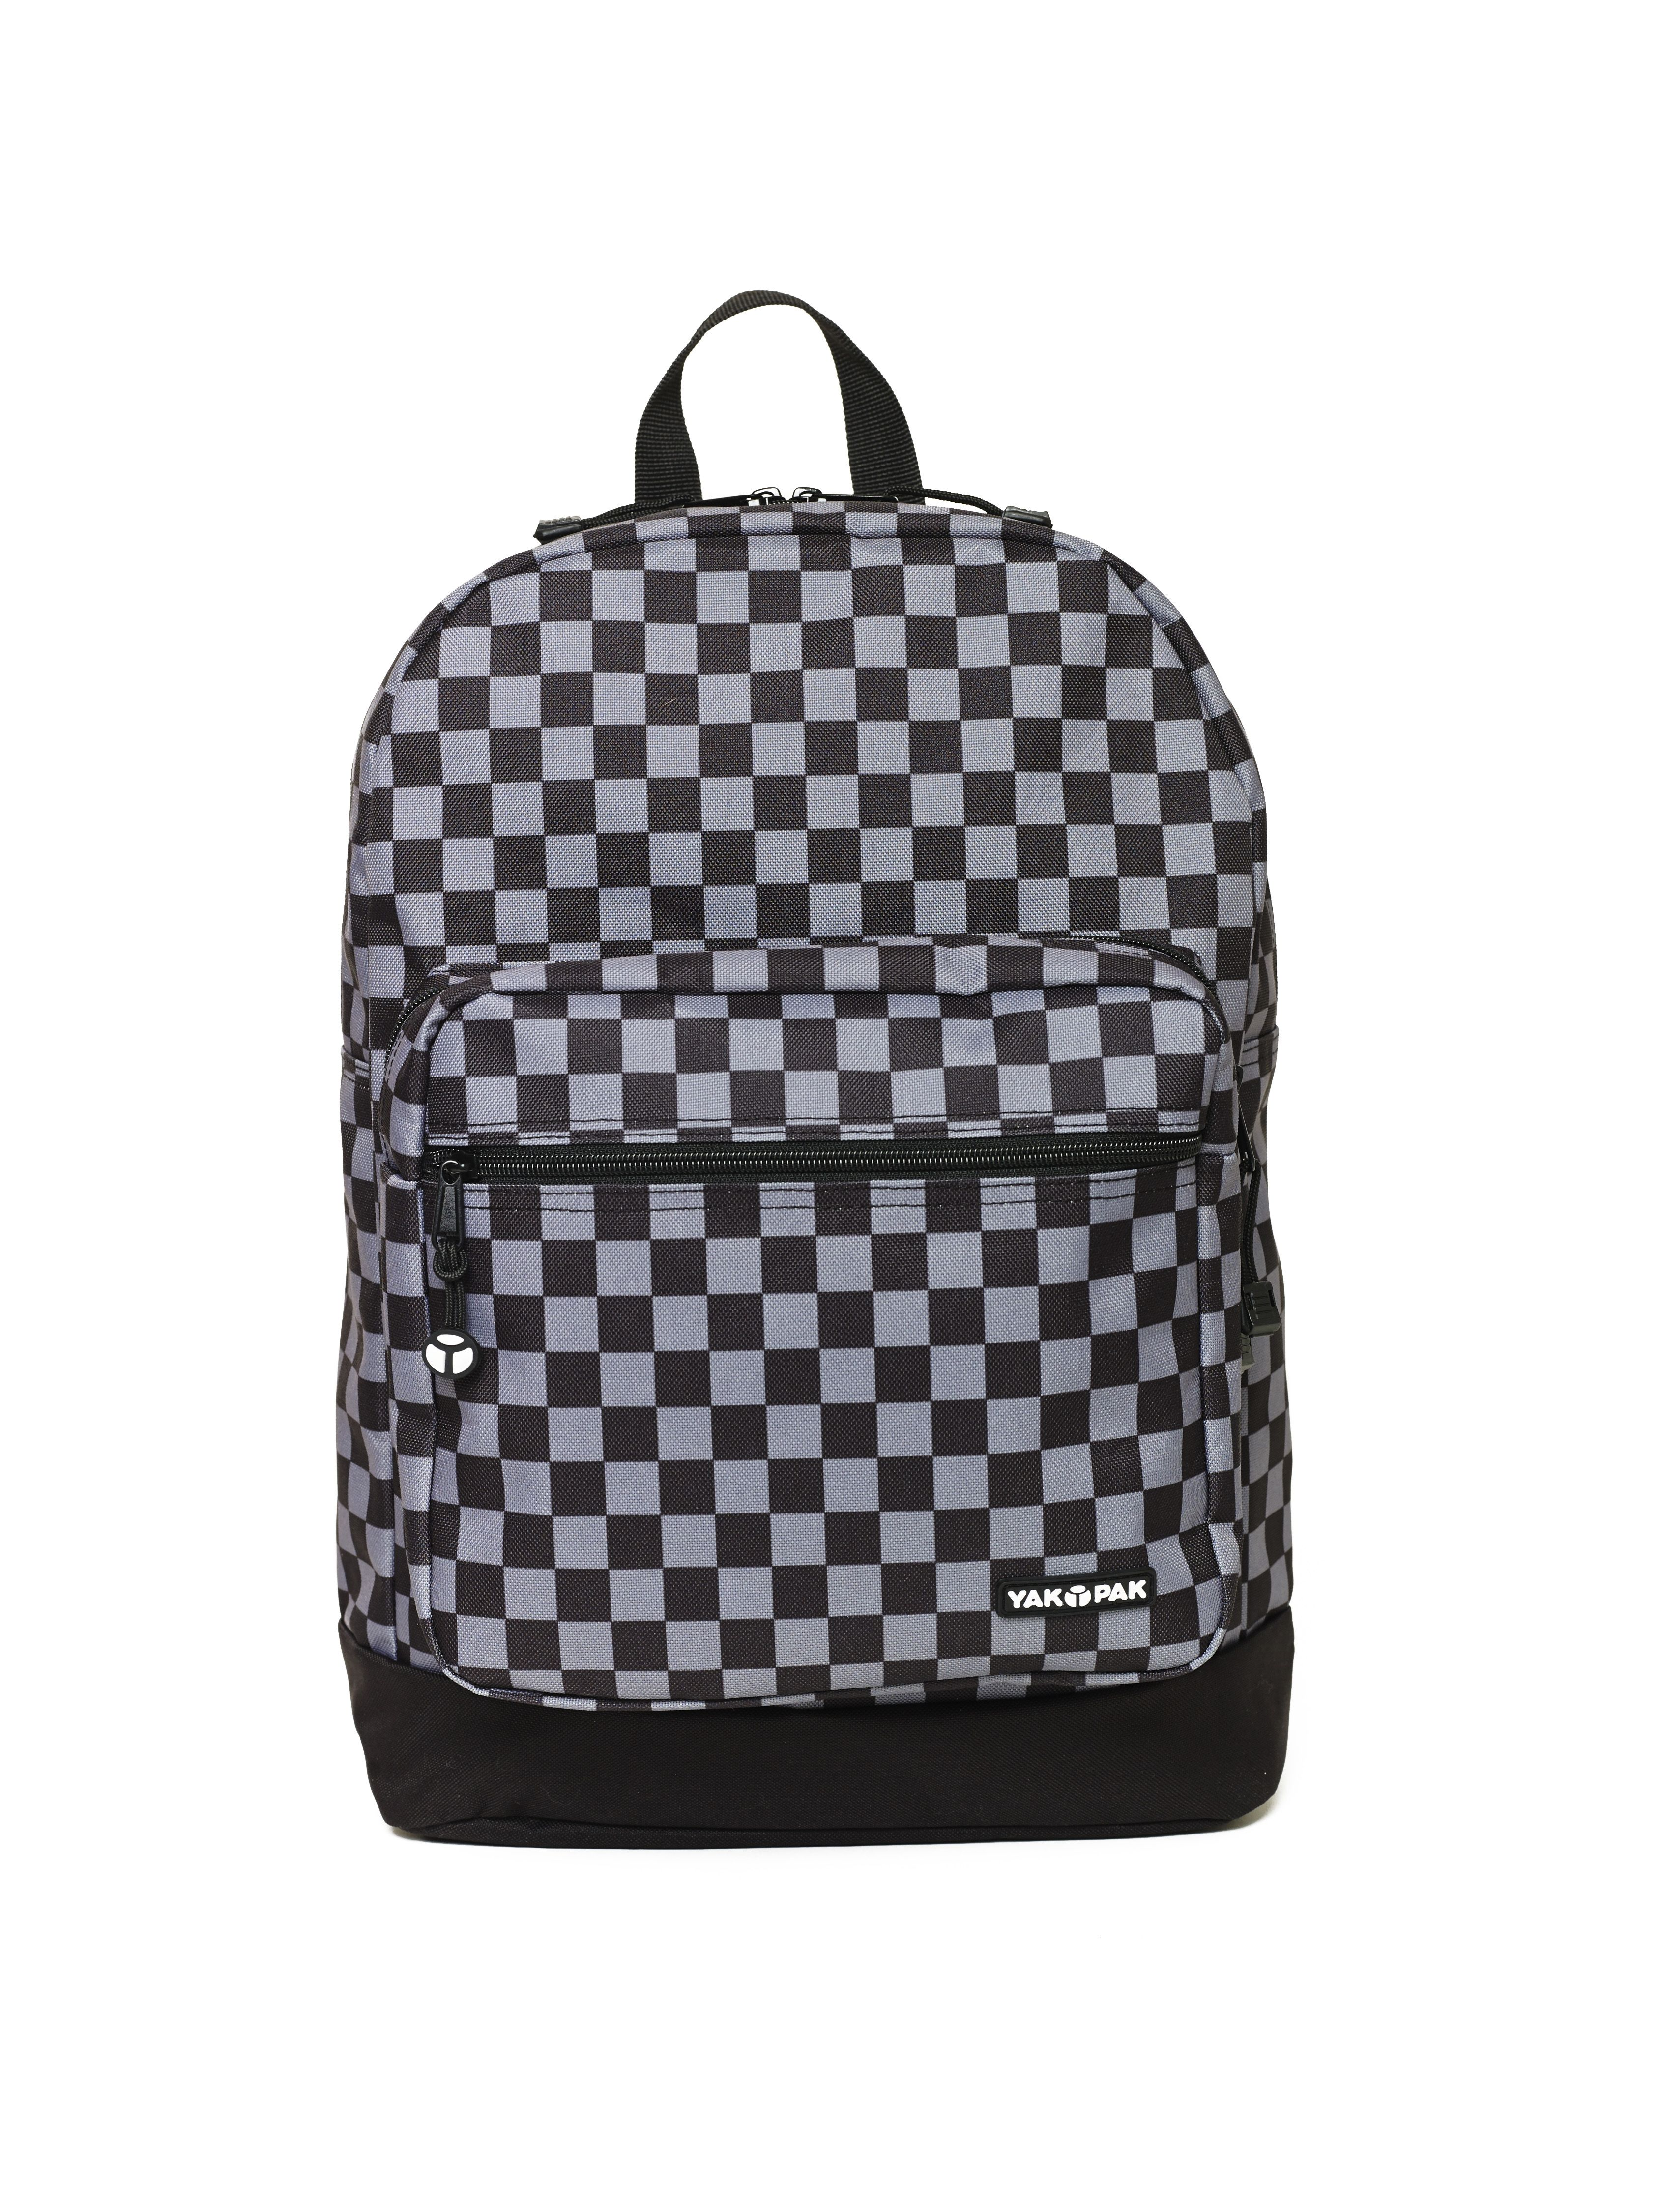 Yak Pak VANDERBILT Backpack - Gray/Black CHECK